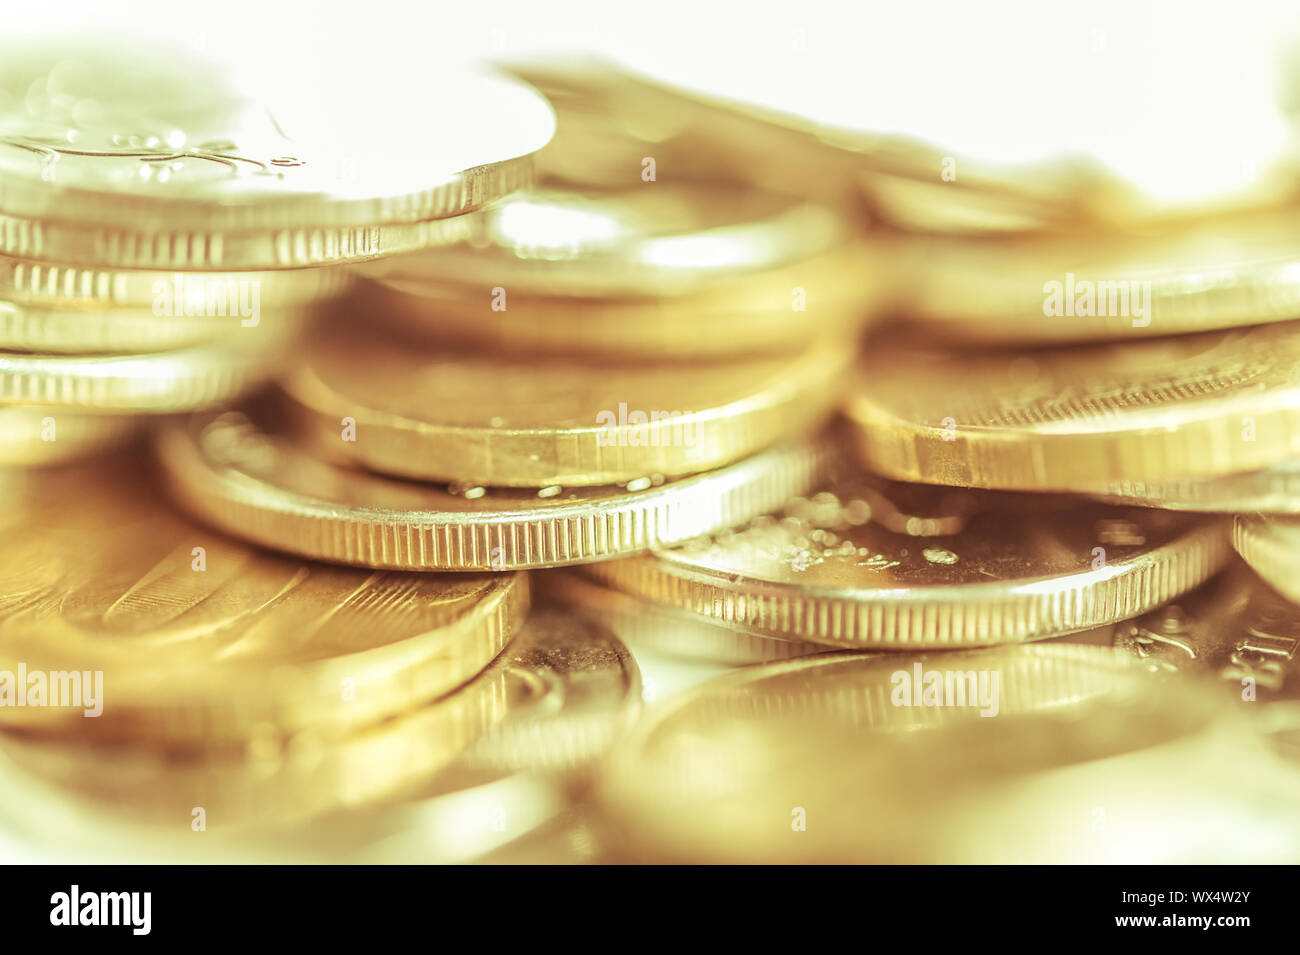 Stack of golden coins macro. Rows of coins for finance and banking concept. Economy trends background for business idea. Stock Photo